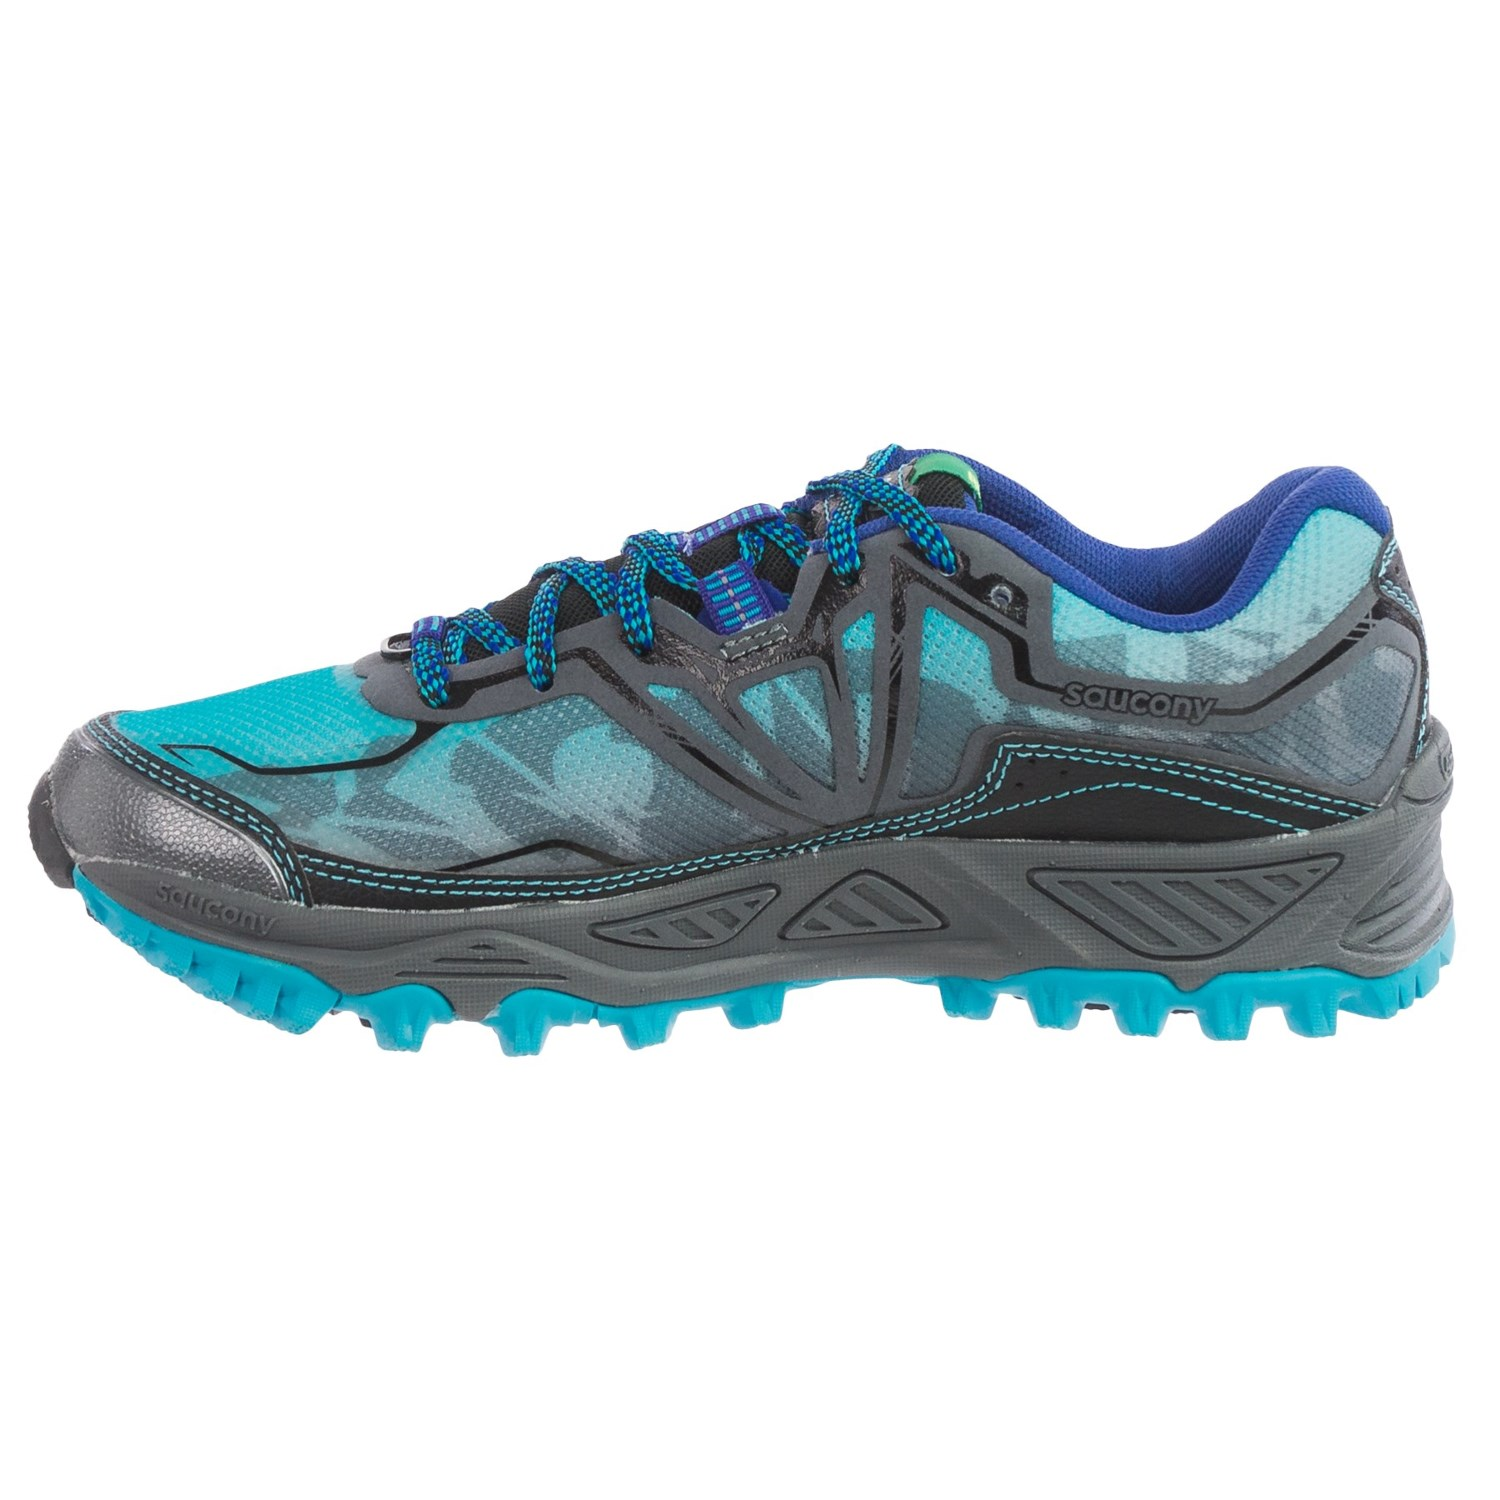 saucony xodus 6 0 trail running shoes for women save 41. Black Bedroom Furniture Sets. Home Design Ideas